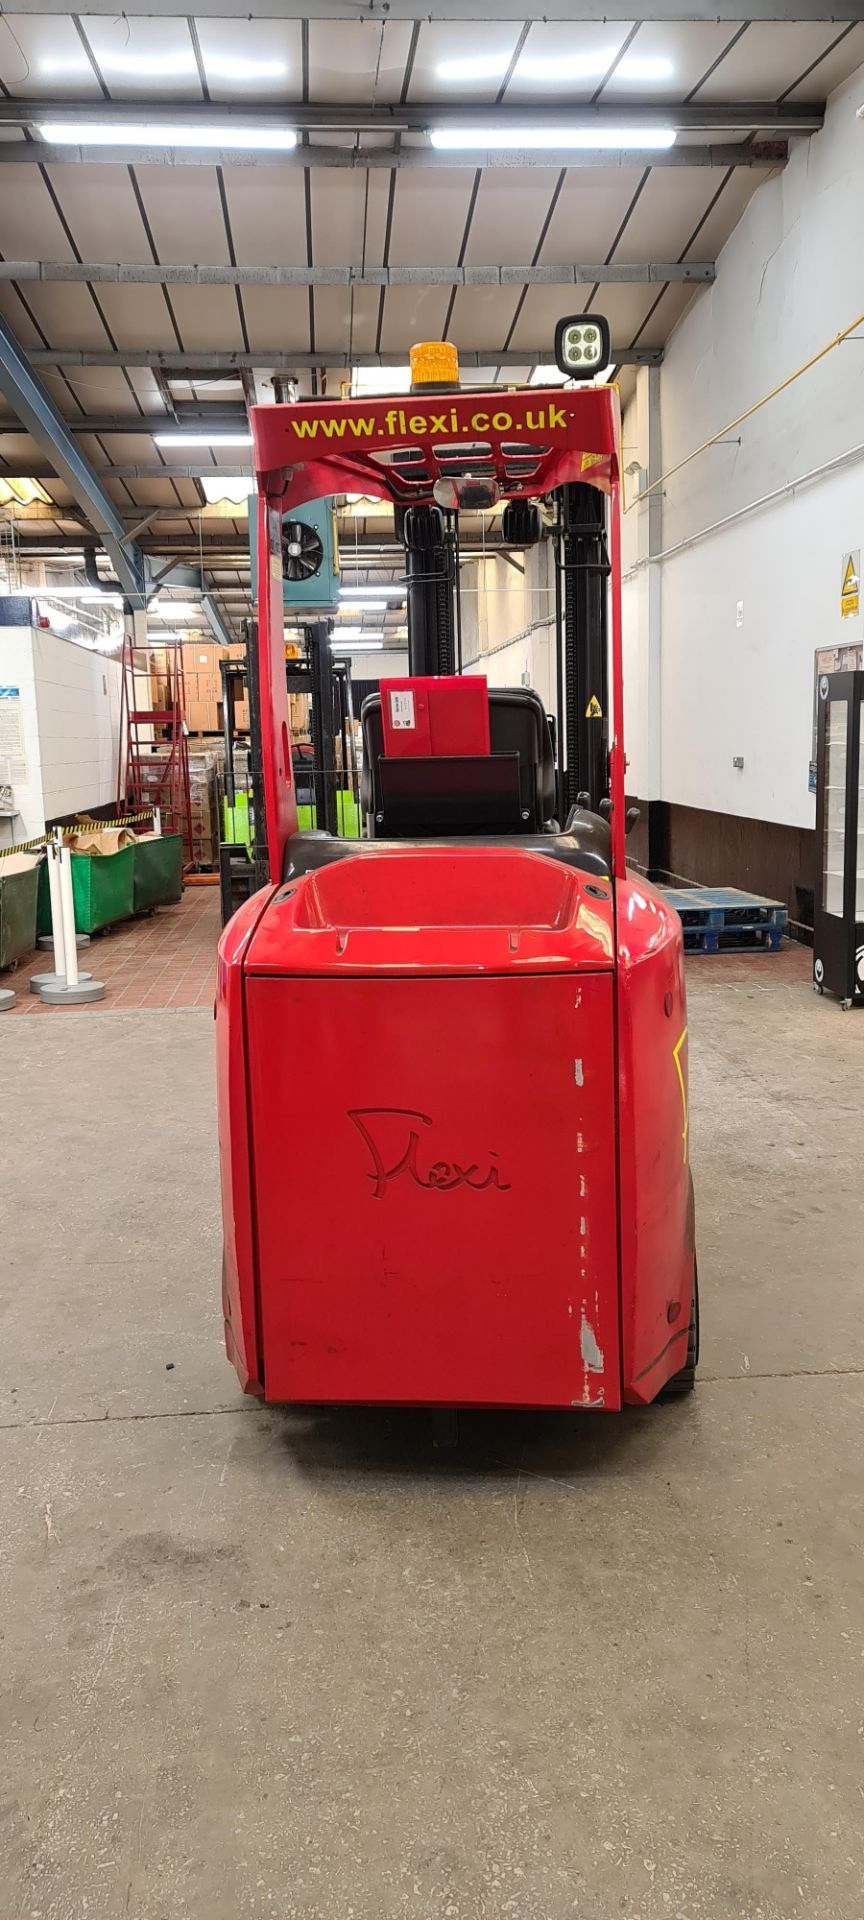 2014 Flexi Euro AC 'bendy' electric Fork Lift Truck - Image 4 of 29